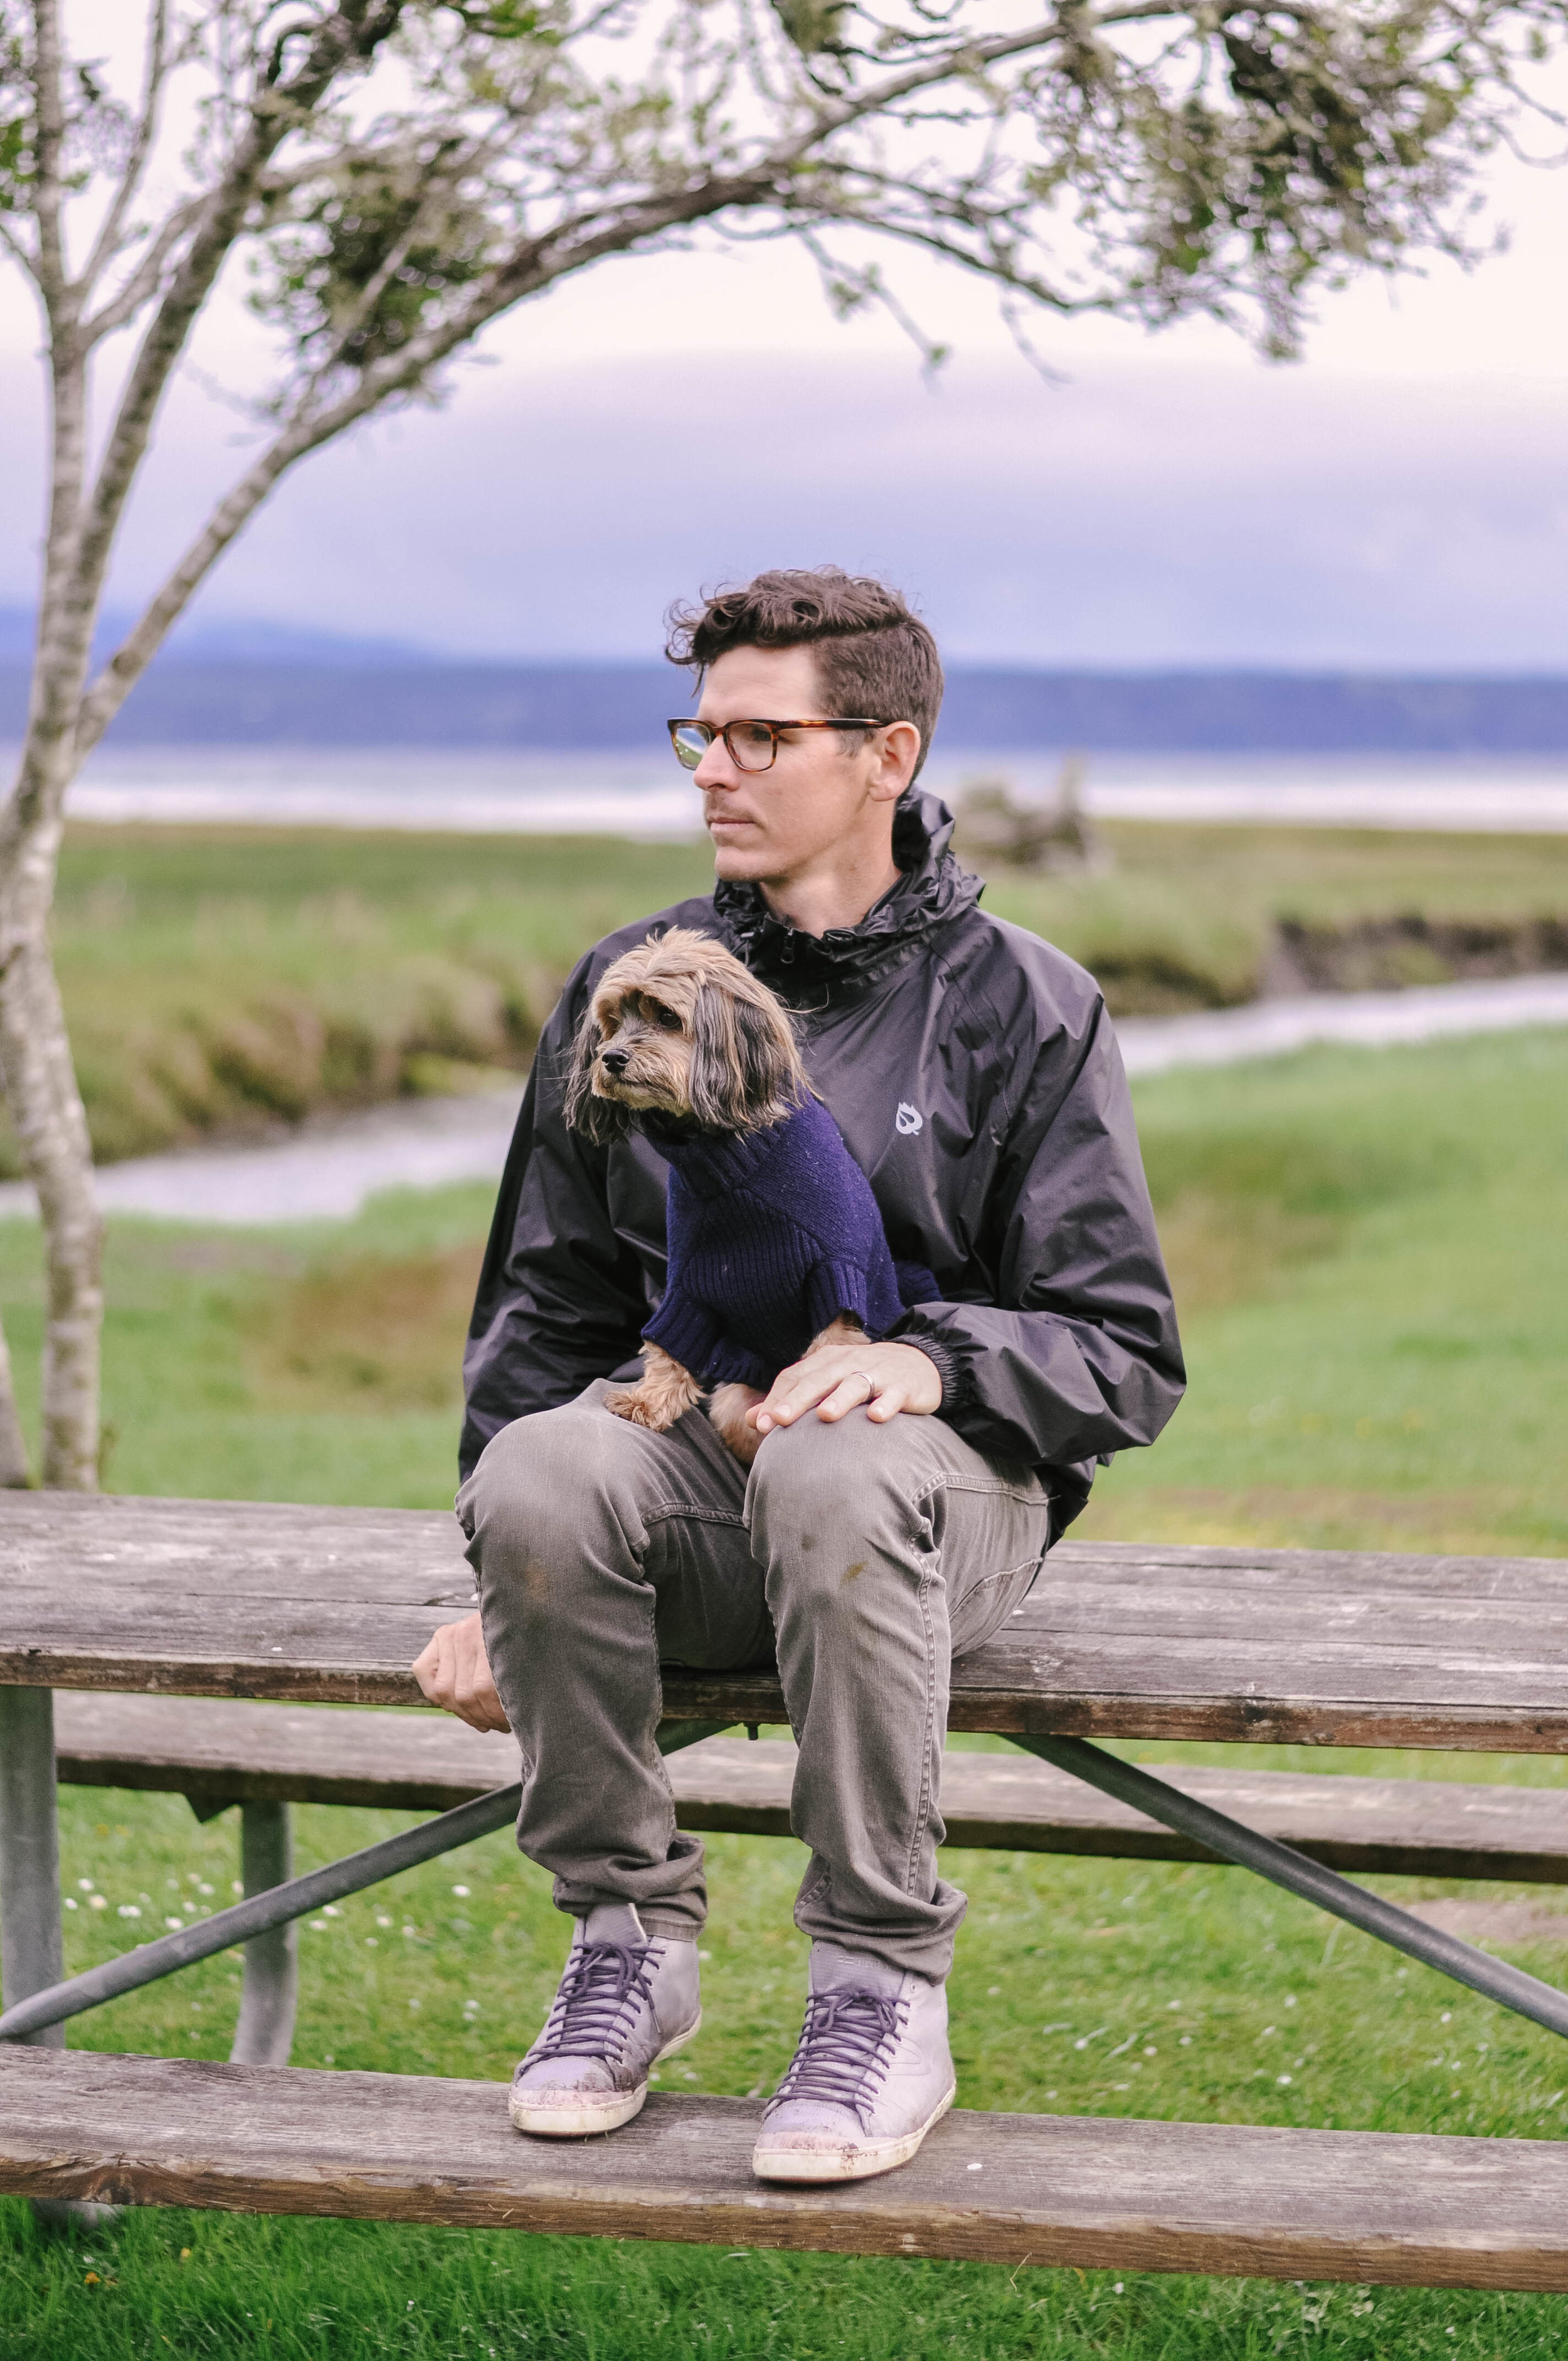 Man and his dog on wooden picnic table